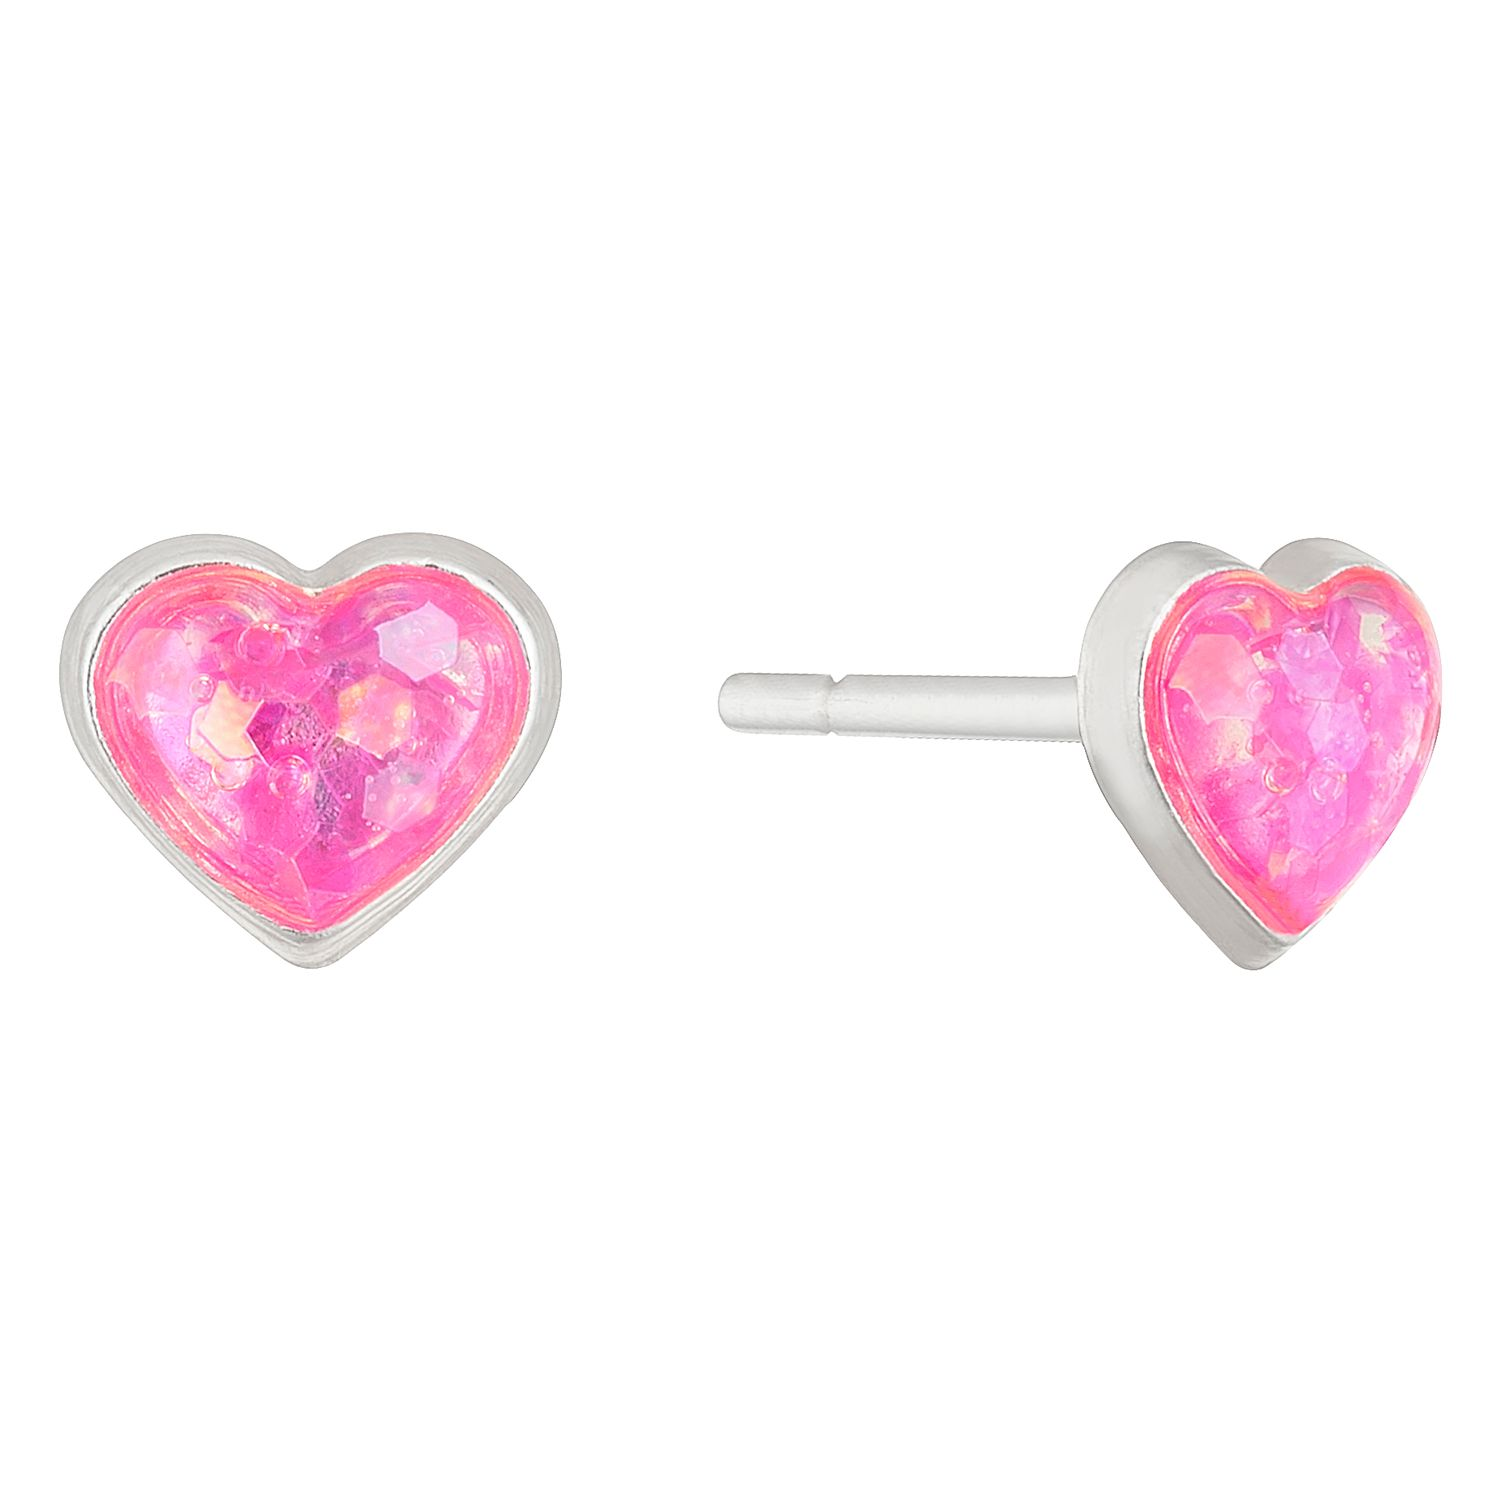 Children's Silver & Pink Glitter Heart Stud Earrings - Product number 5123623